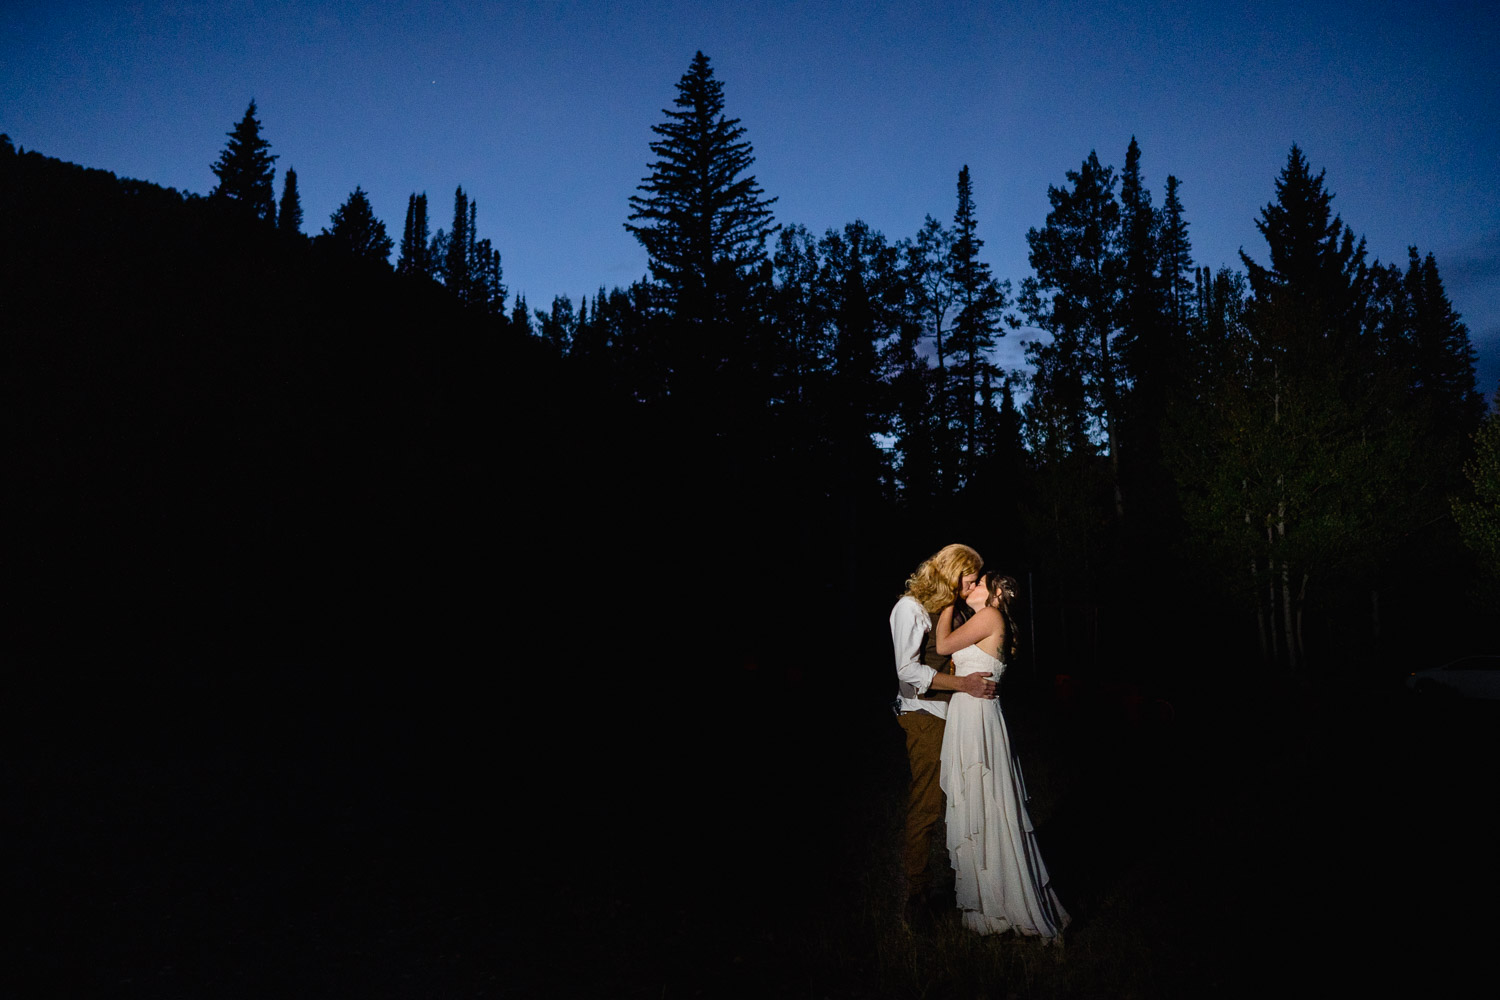 happy couple kissing under night sky tree profile spruces campground